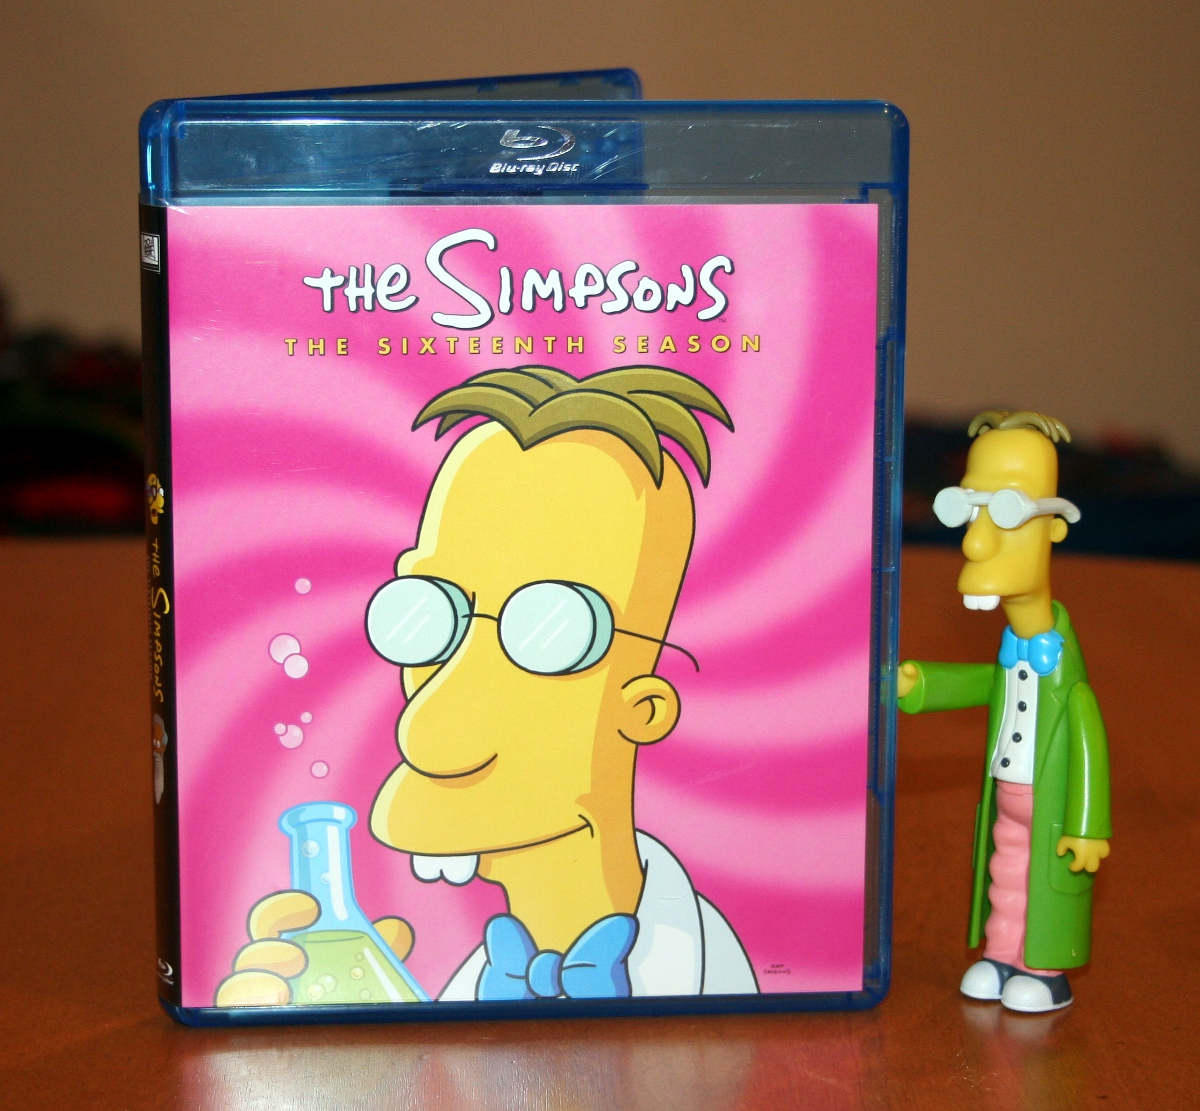 D Oh I Review The 16th Simpsons Season On Blu Ray Mommy S Busy Go Ask Daddy